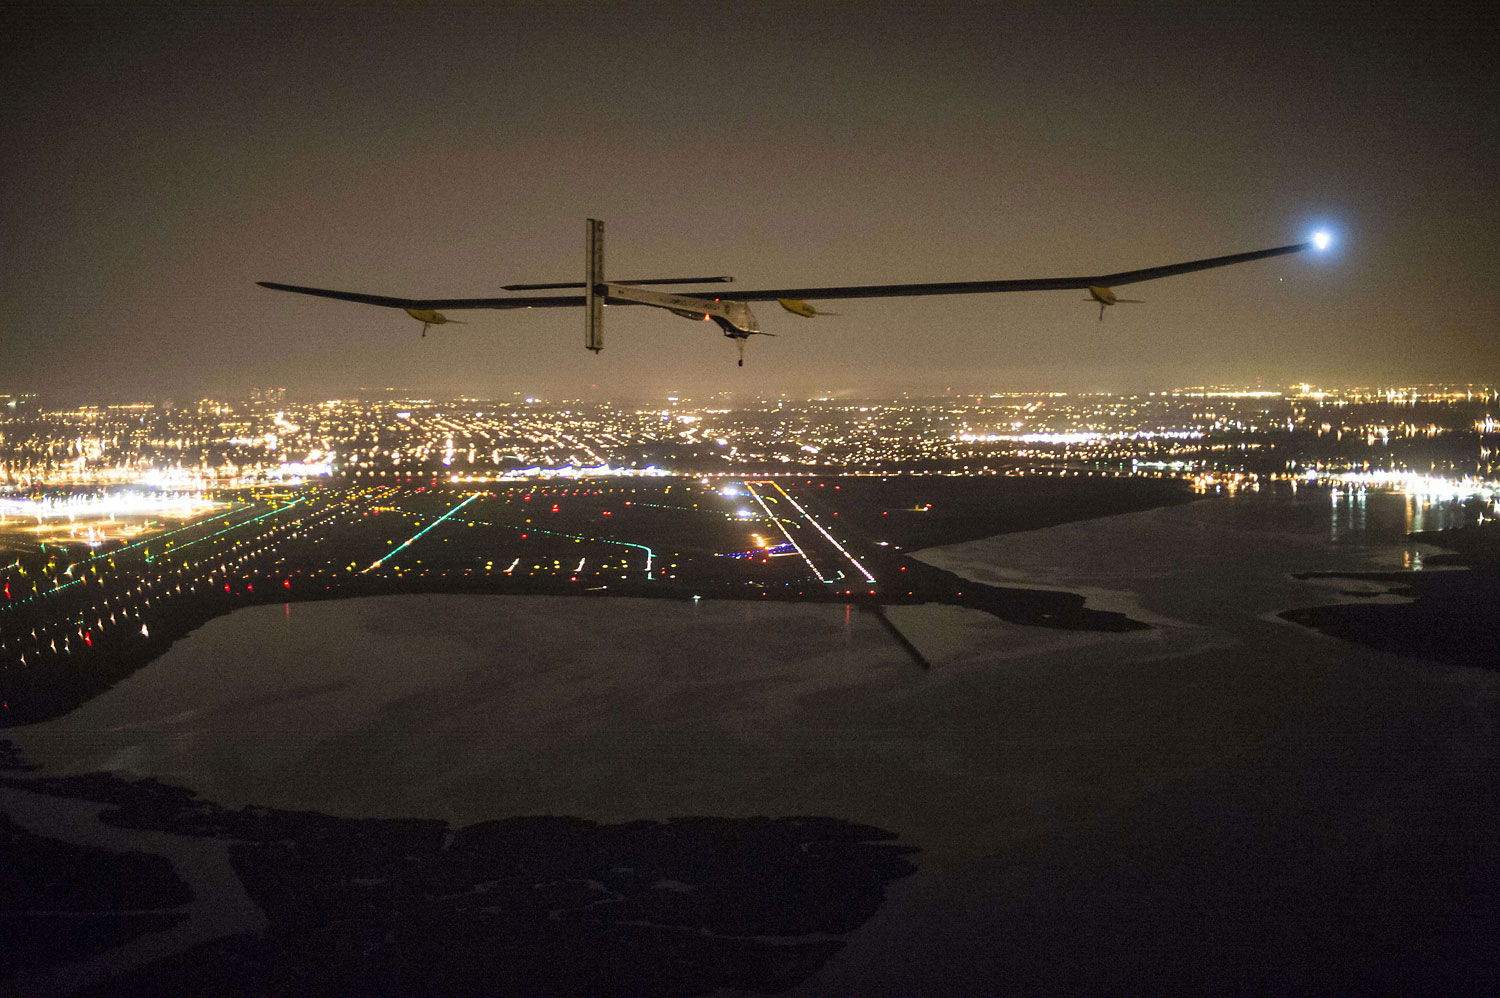 Solar Impulse, with Andre Borschberg onboard, approaches JFK airport on late July 6, 2013 in New York. The experimental Solar Impulse plane, powered by the sun, completed a transcontinental trip across the United States late Saturday, touching down in New York despite a rip in the fabric of one wing.